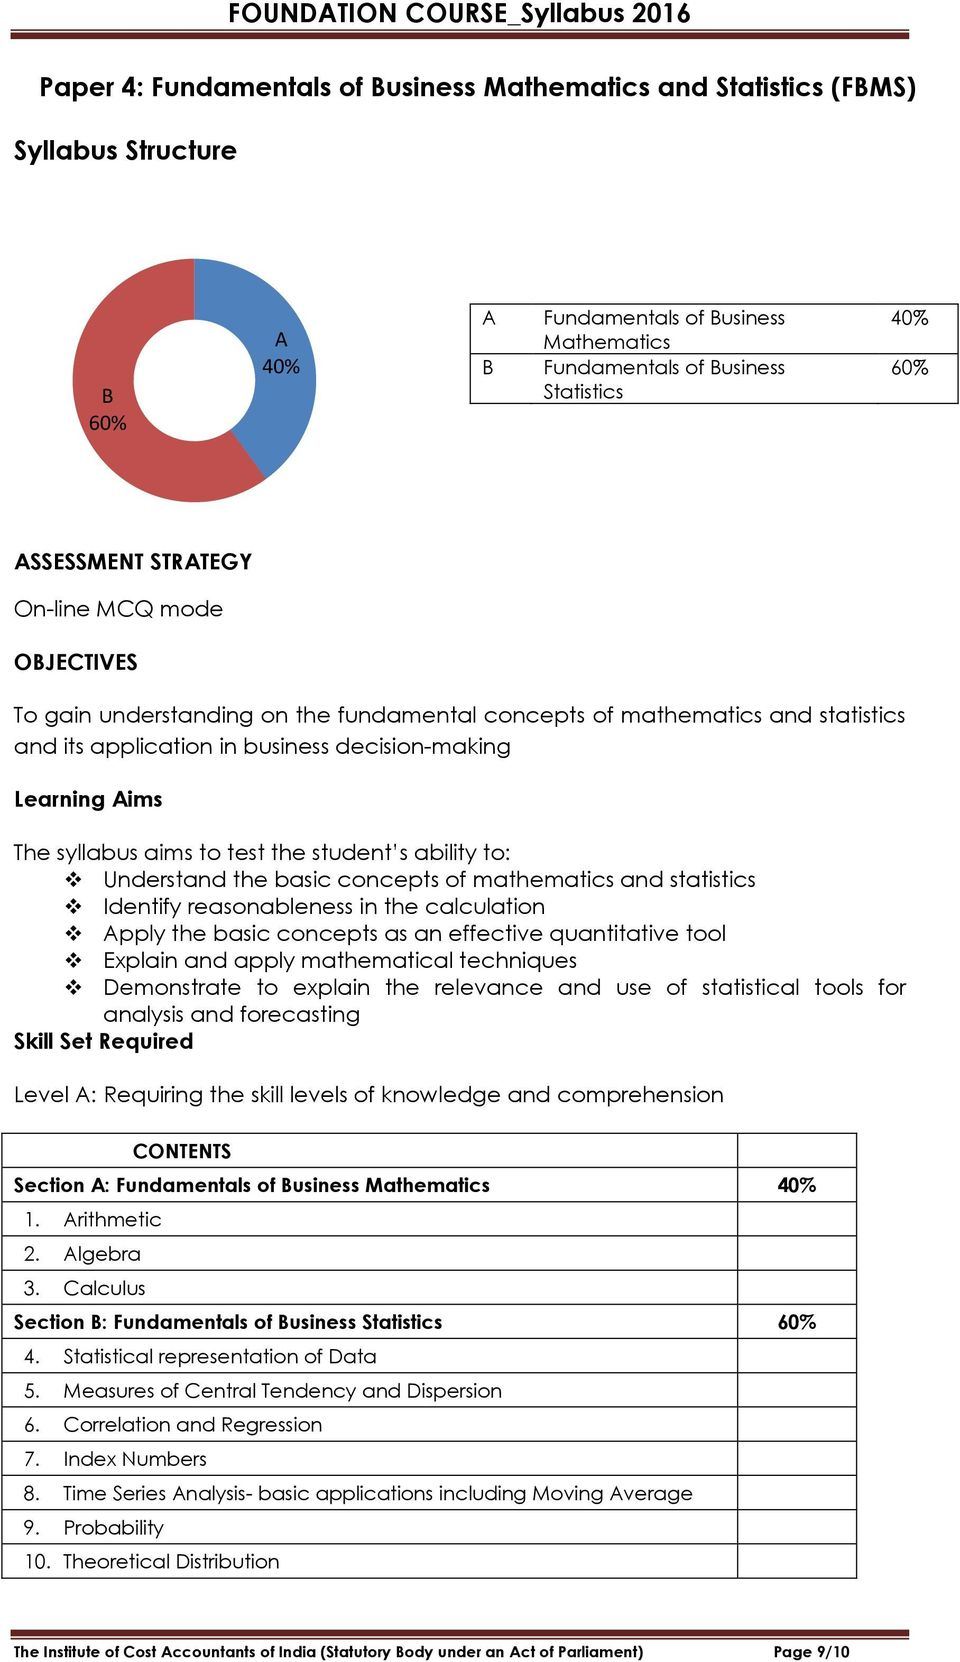 student s ability to: Understand the basic concepts of mathematics and statistics Identify reasonableness in the calculation pply the basic concepts as an effective quantitative tool Explain and